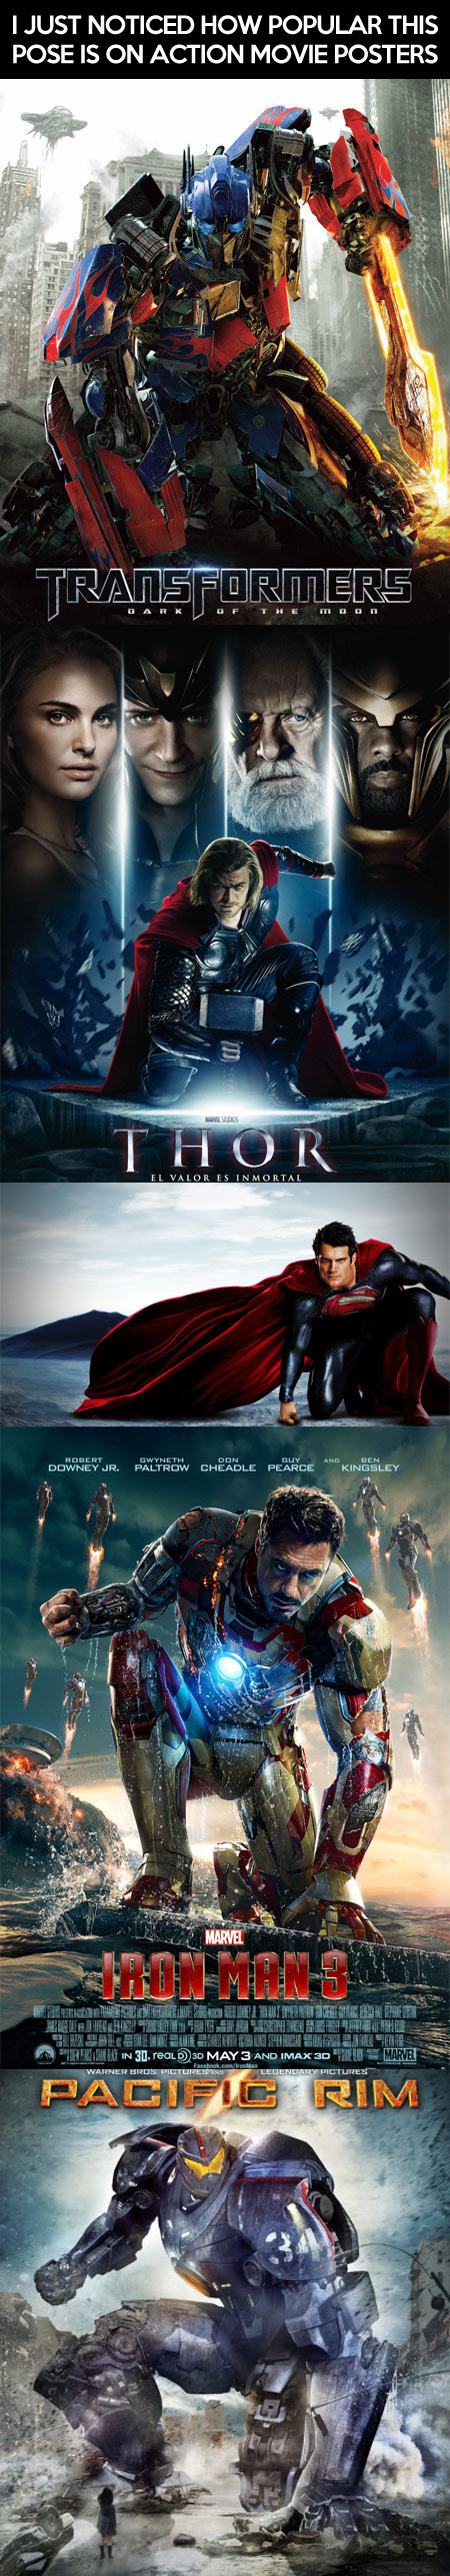 Popular pose on action movie posters…